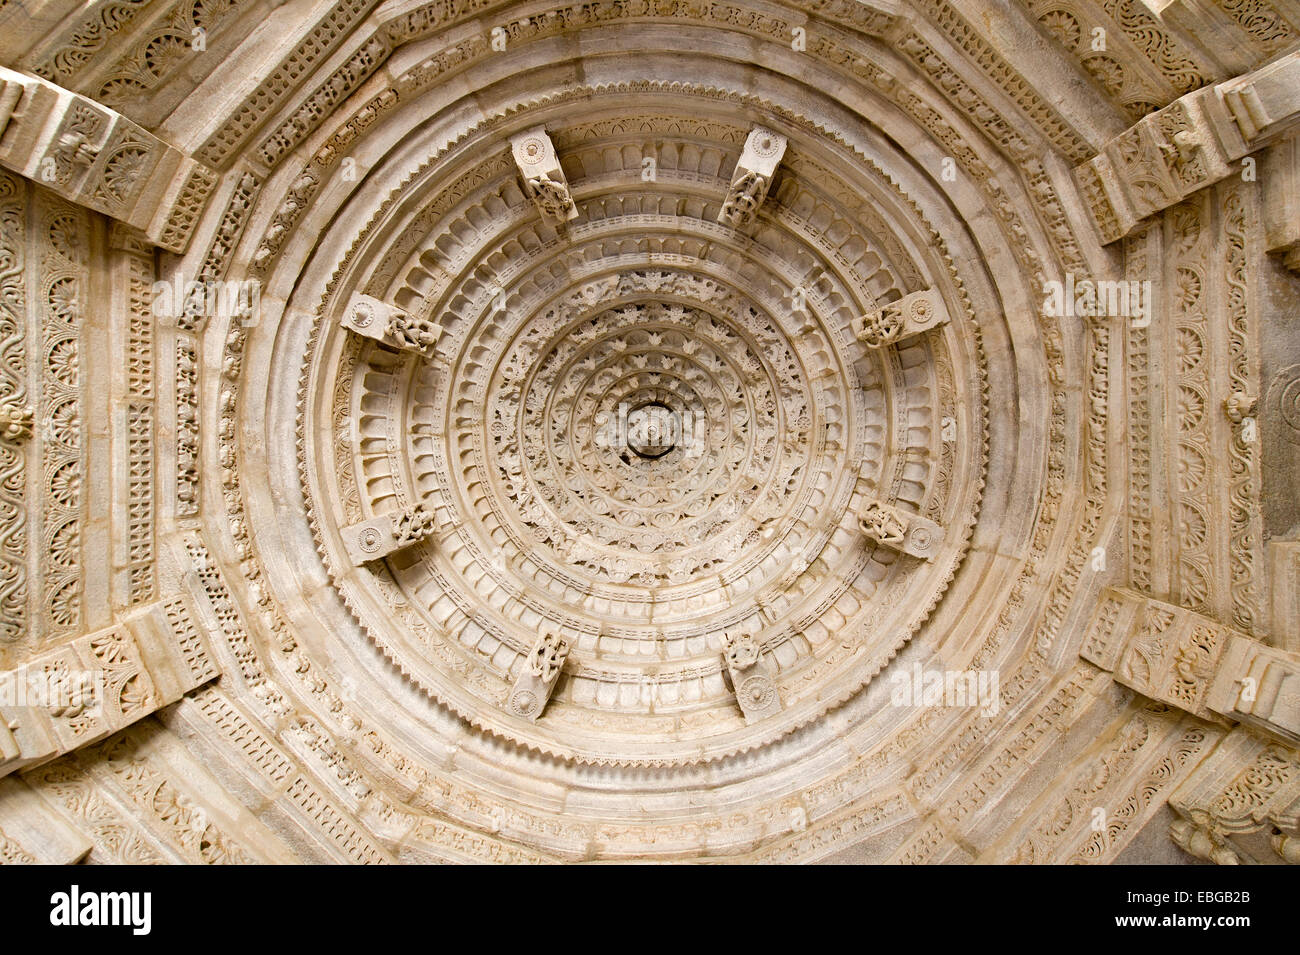 Ornate ceilings in the marble temple, Adinatha Temple, temple of the Jain religion, Ranakpur, Rajasthan, India Stock Photo